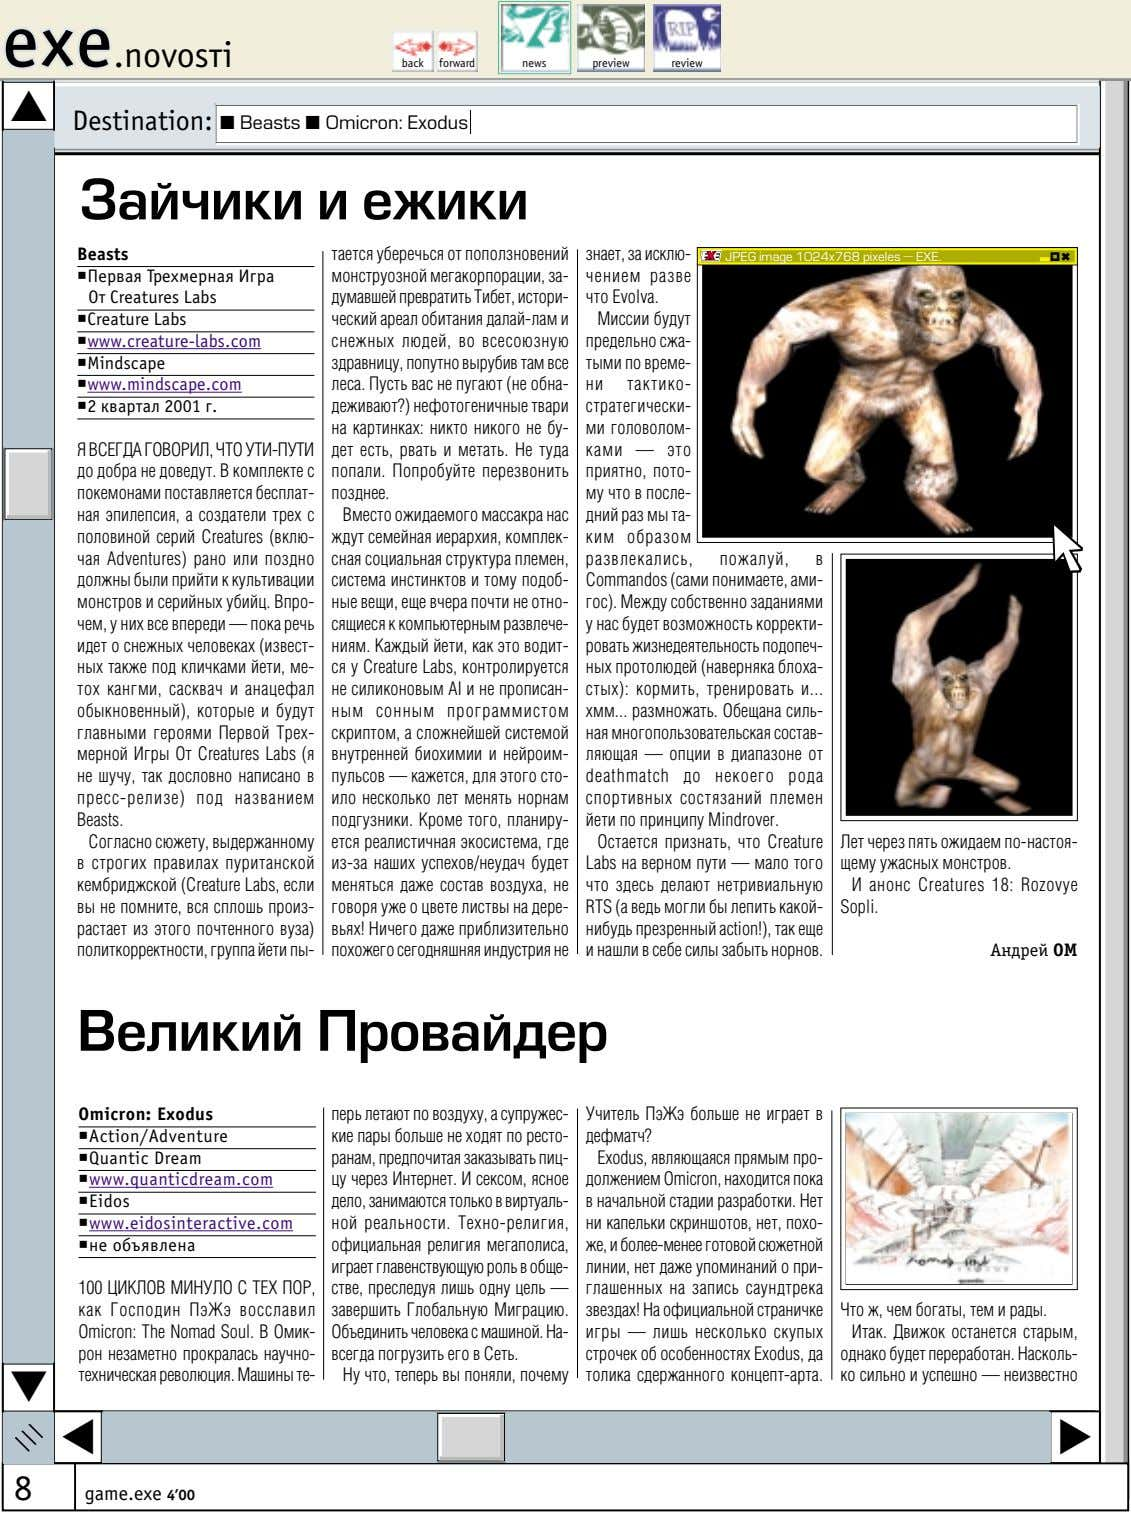 exe.novosтi back forward news preview review Destination: Beasts Omicron: Exodus Çàé÷èêè è åæèêè